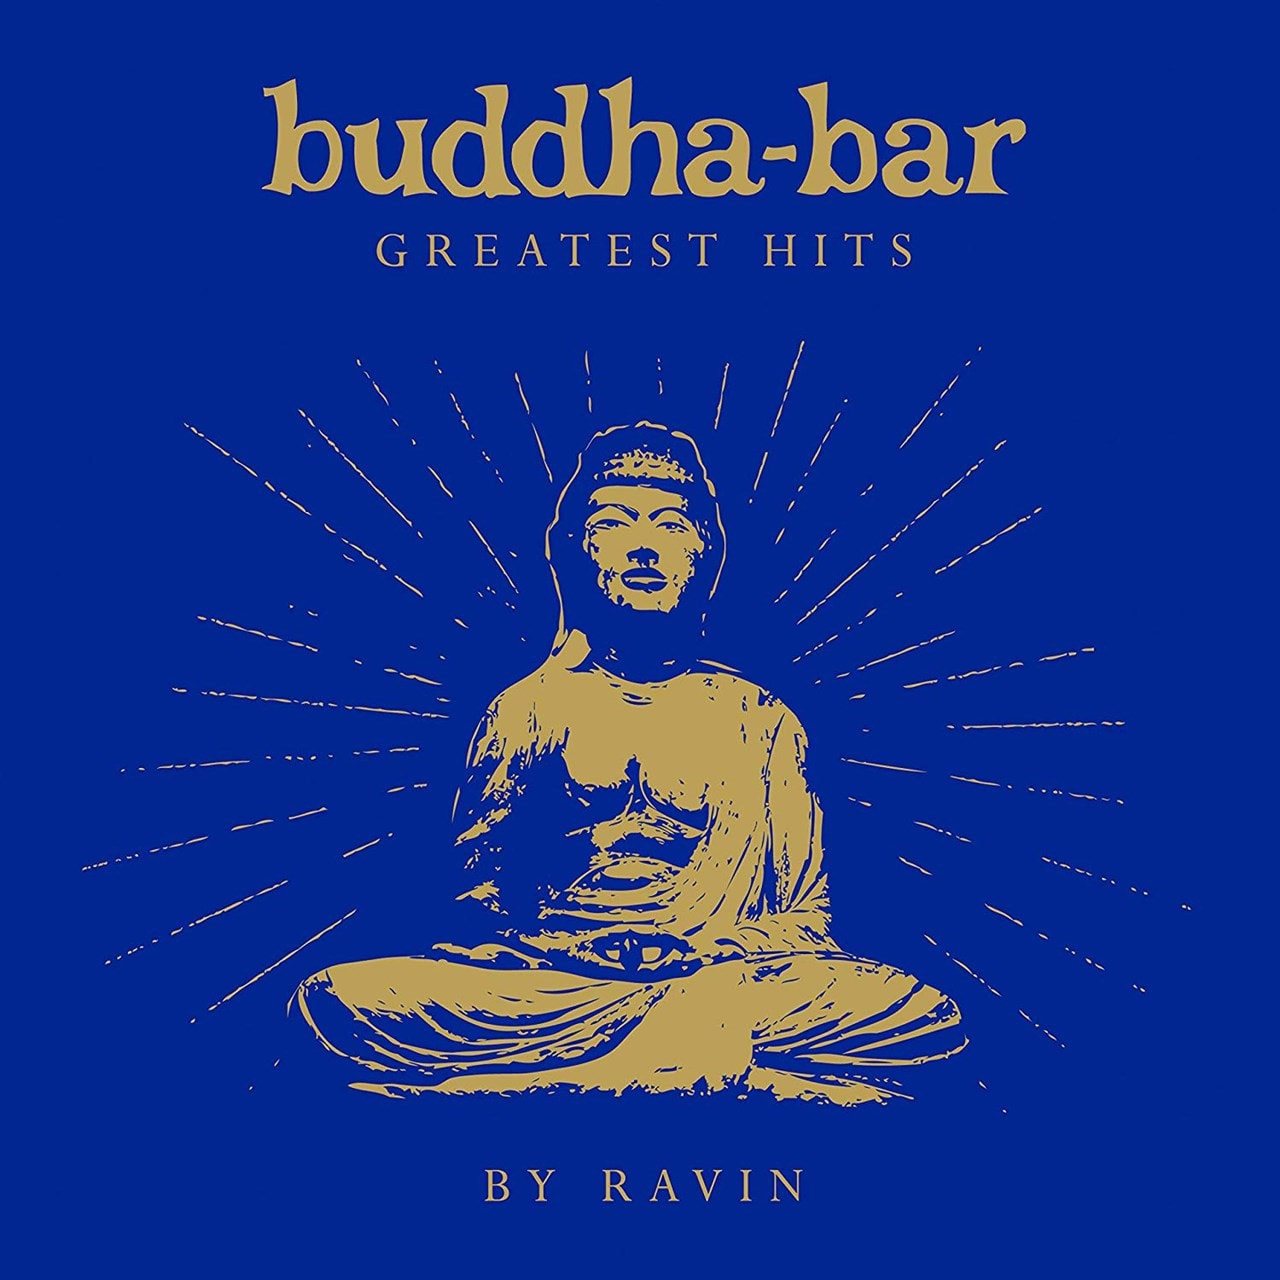 Budda-bar Greatest Hits - 1